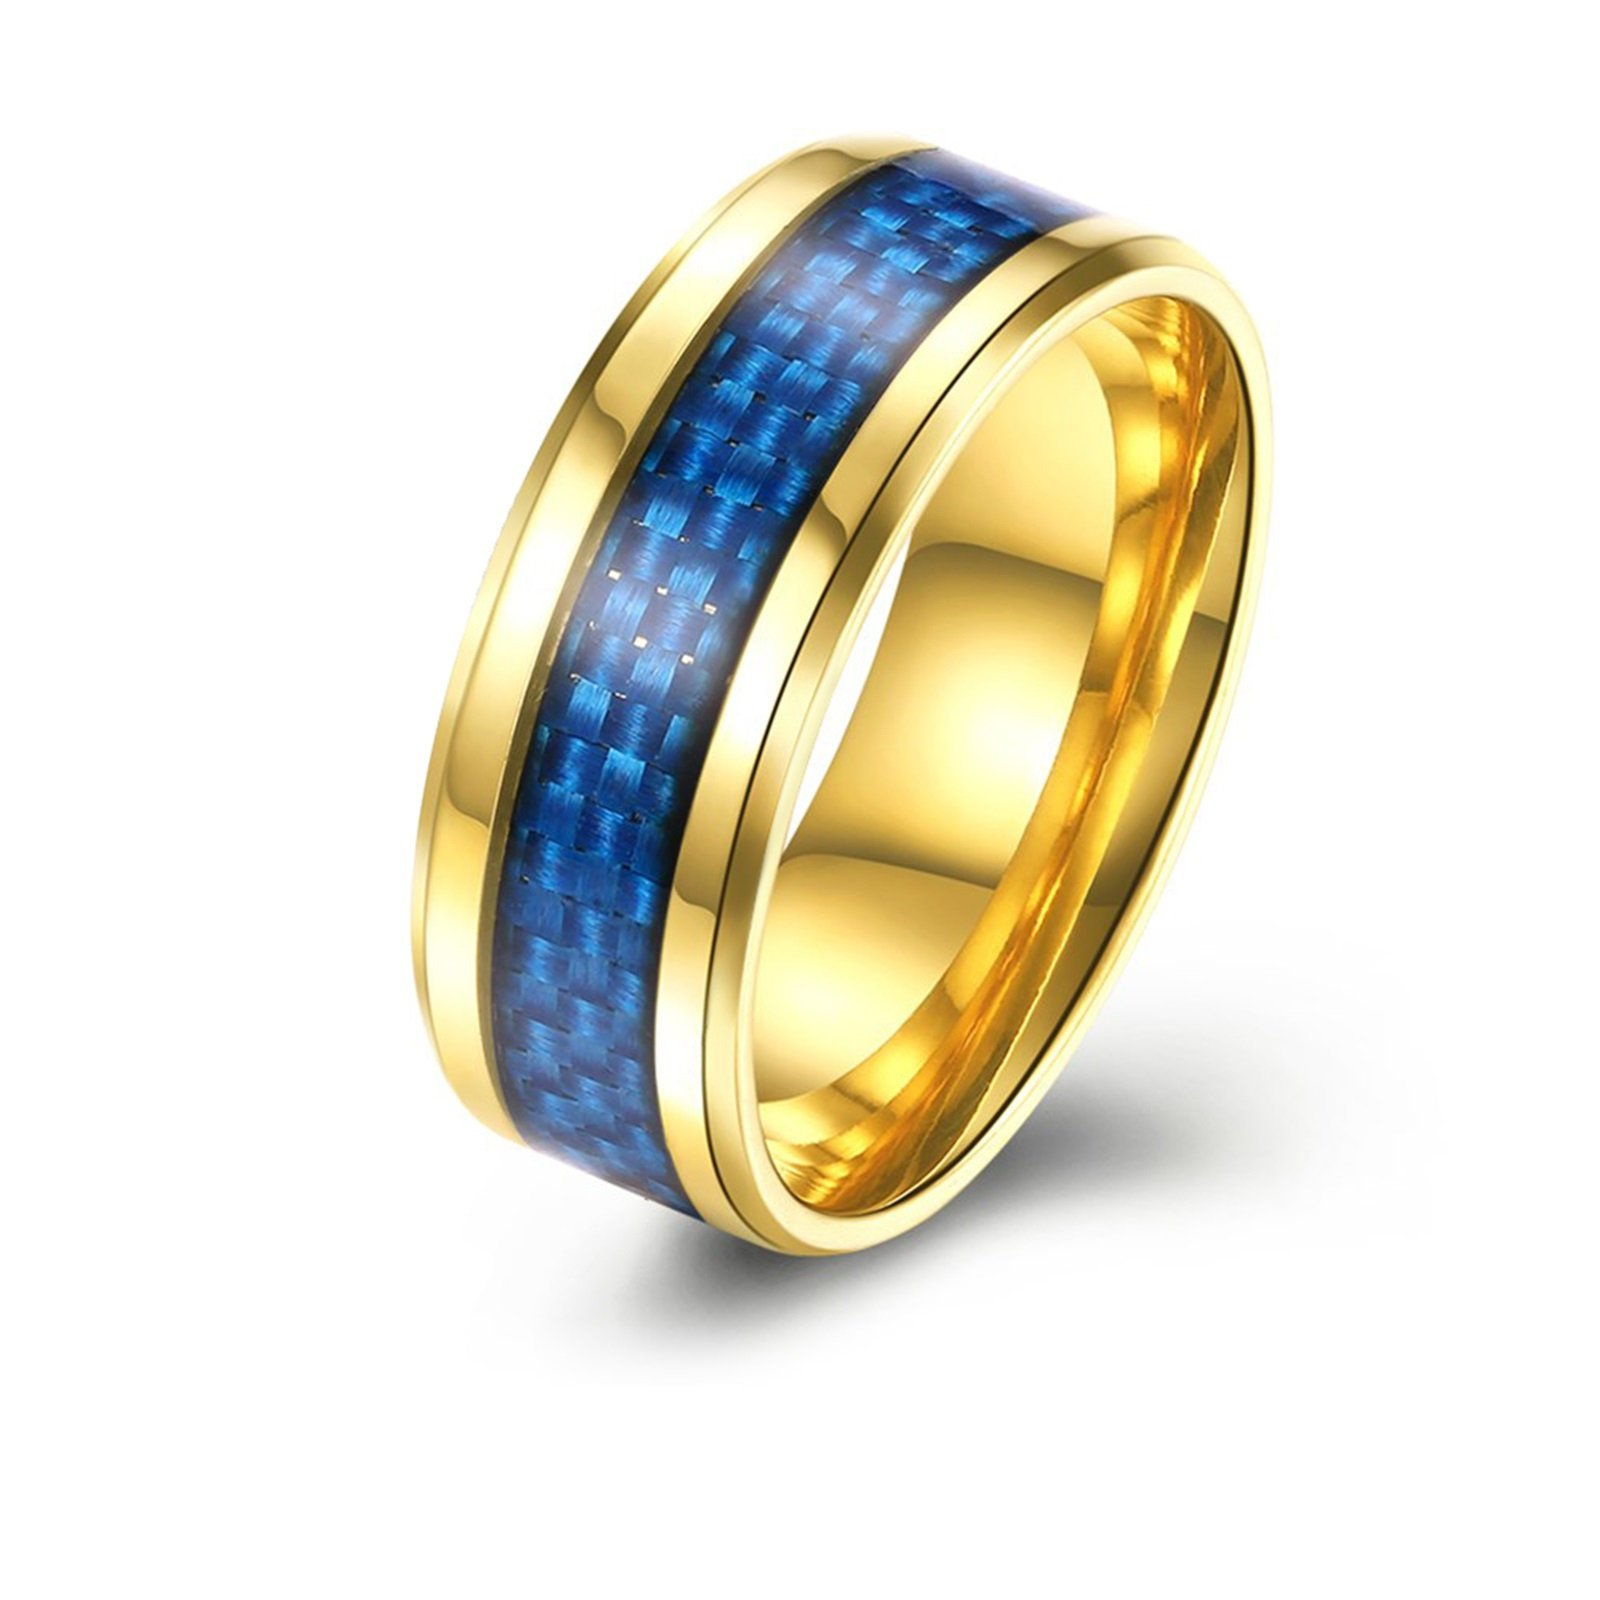 Epinki Stainless Steel Wedding Rings for Men Blue Carbon Fiber Inlaid 8MM Gold Ring Size 9 Men Accessories